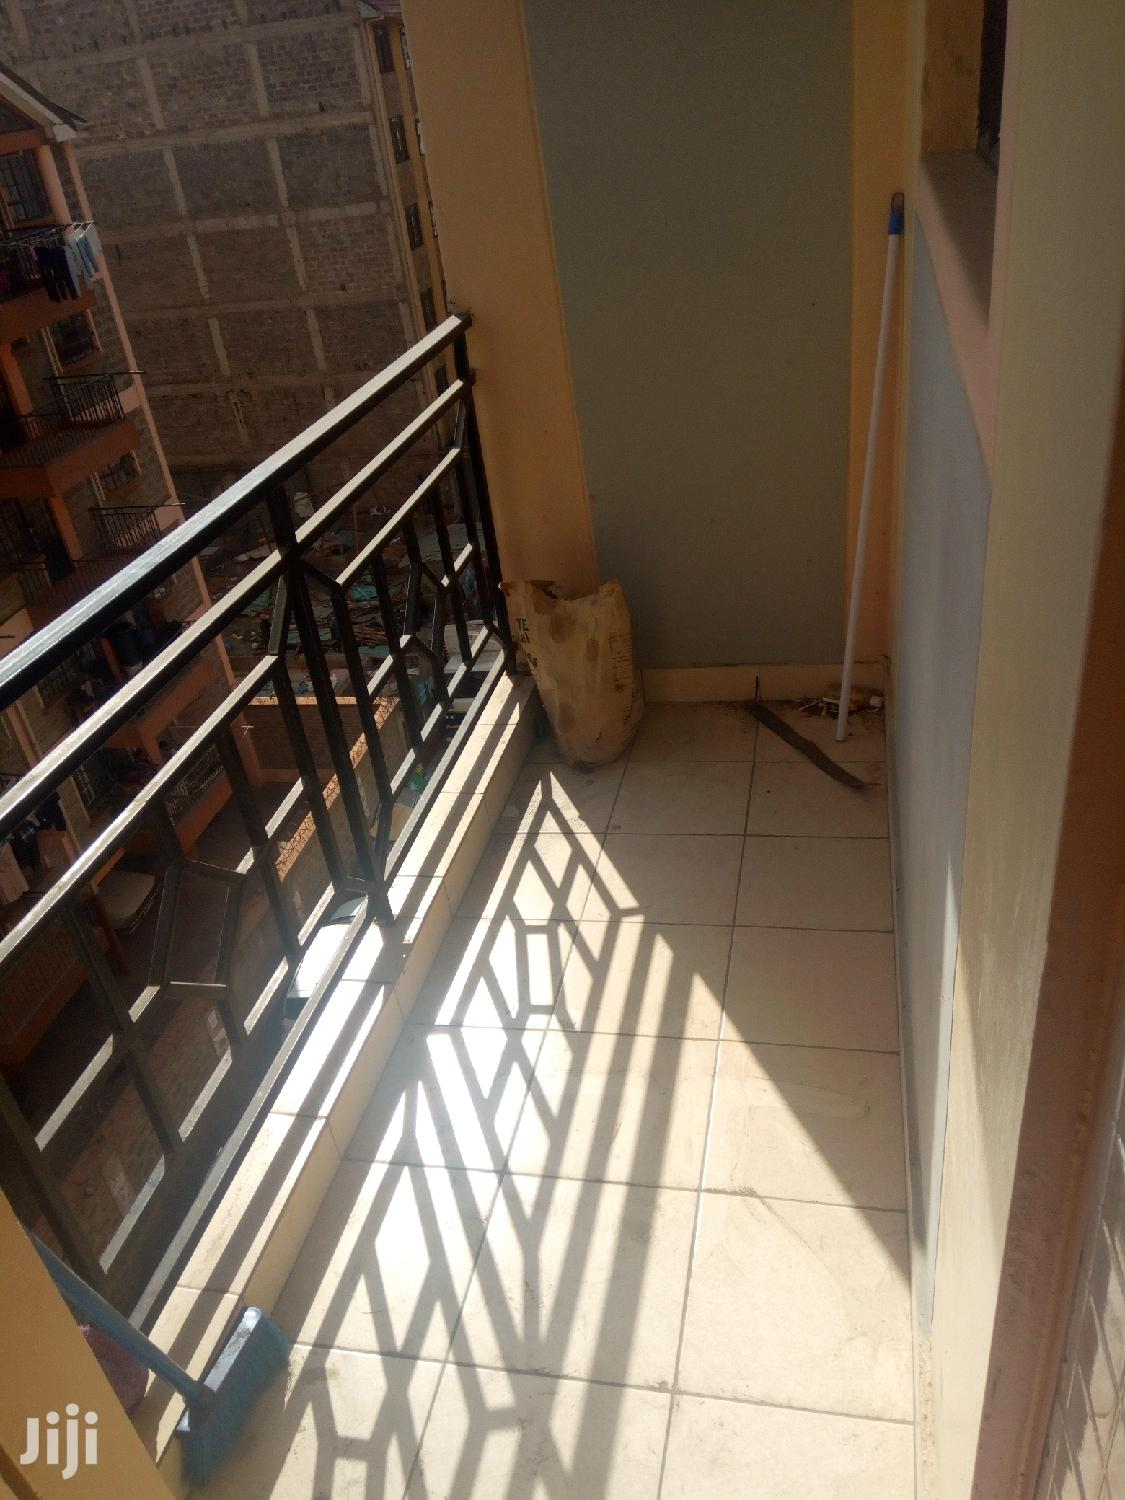 New One Bedroomed To Let In Nairobi West | Houses & Apartments For Rent for sale in Nairobi Central, Nairobi, Kenya